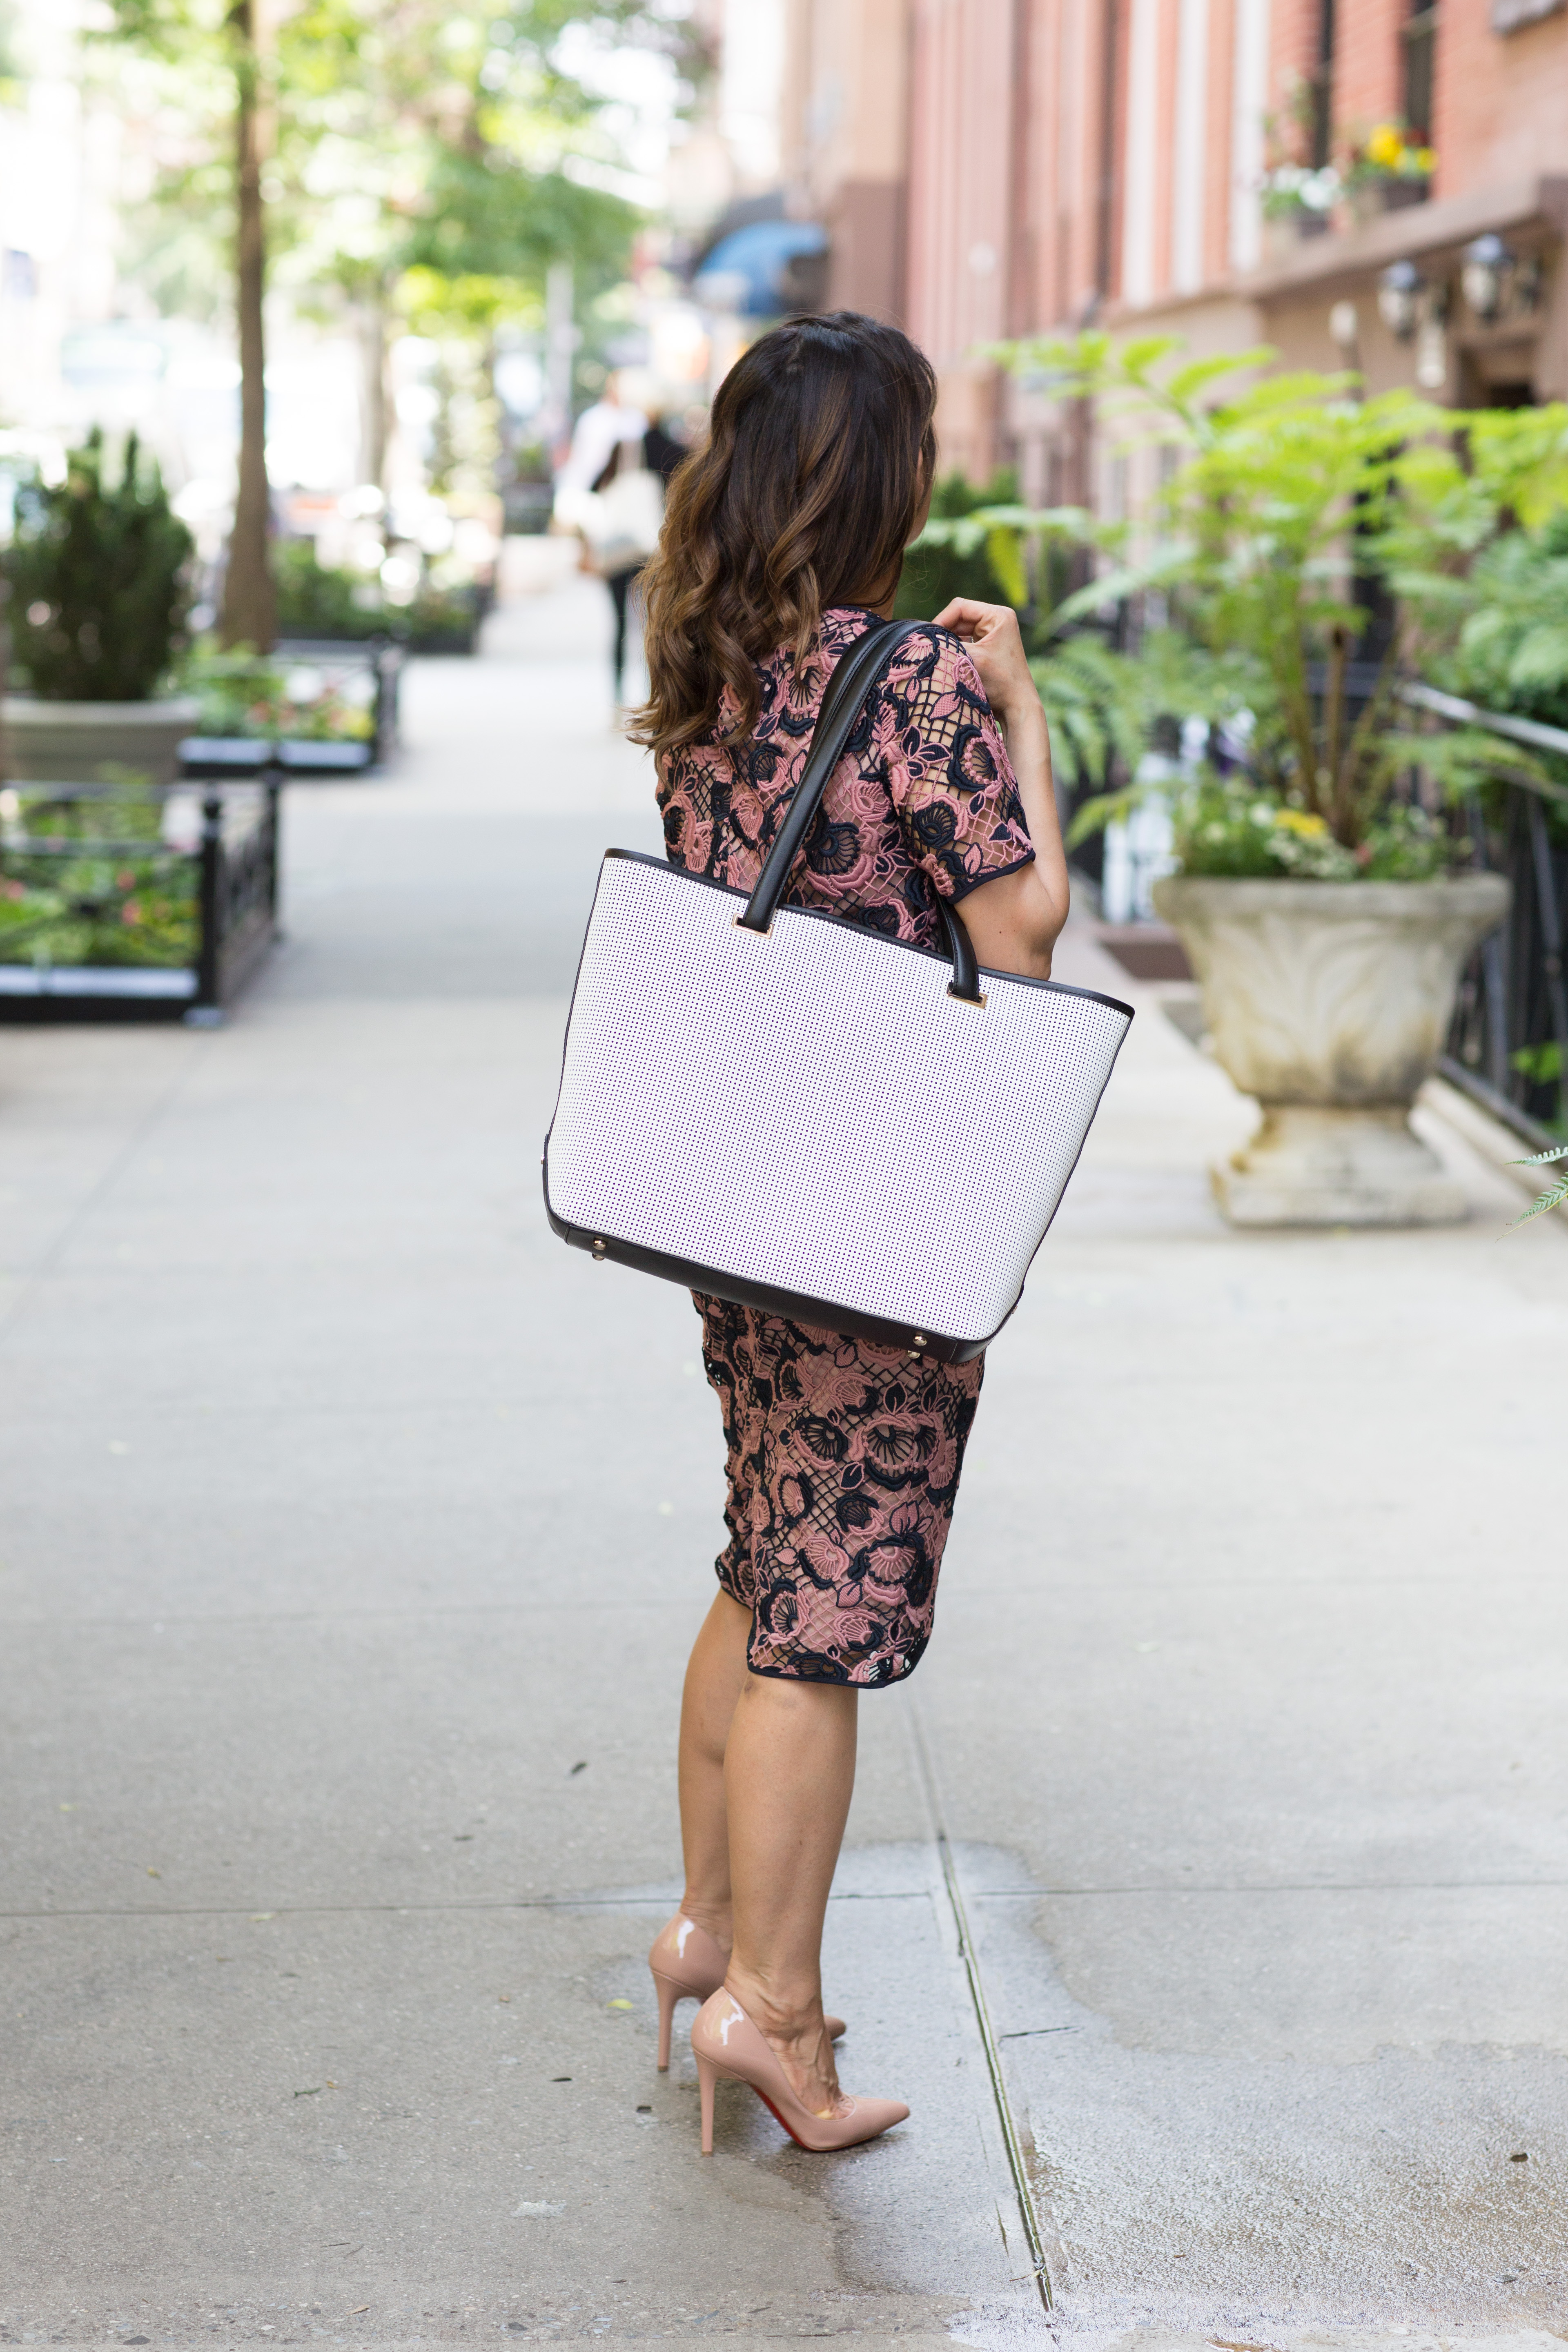 Lace top and pencil skirt with nude heels and white tote from Lo and Sons for the perfect work bag or work tote